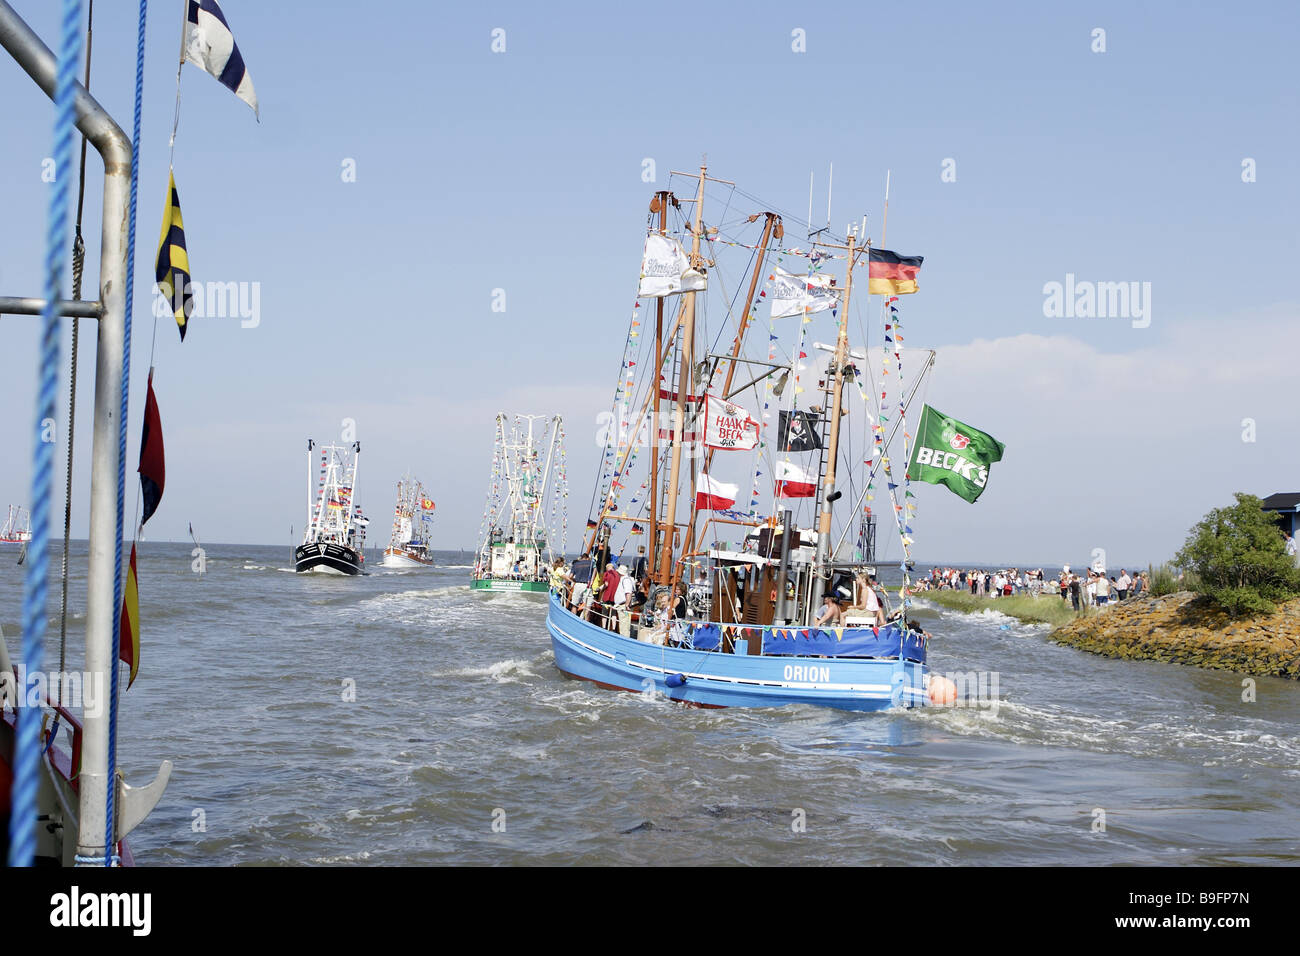 Leakage visitors colorfully Butjadingen Germany shrinkage flags trip party fisher-boats haul fish-cutters flags - Stock Image